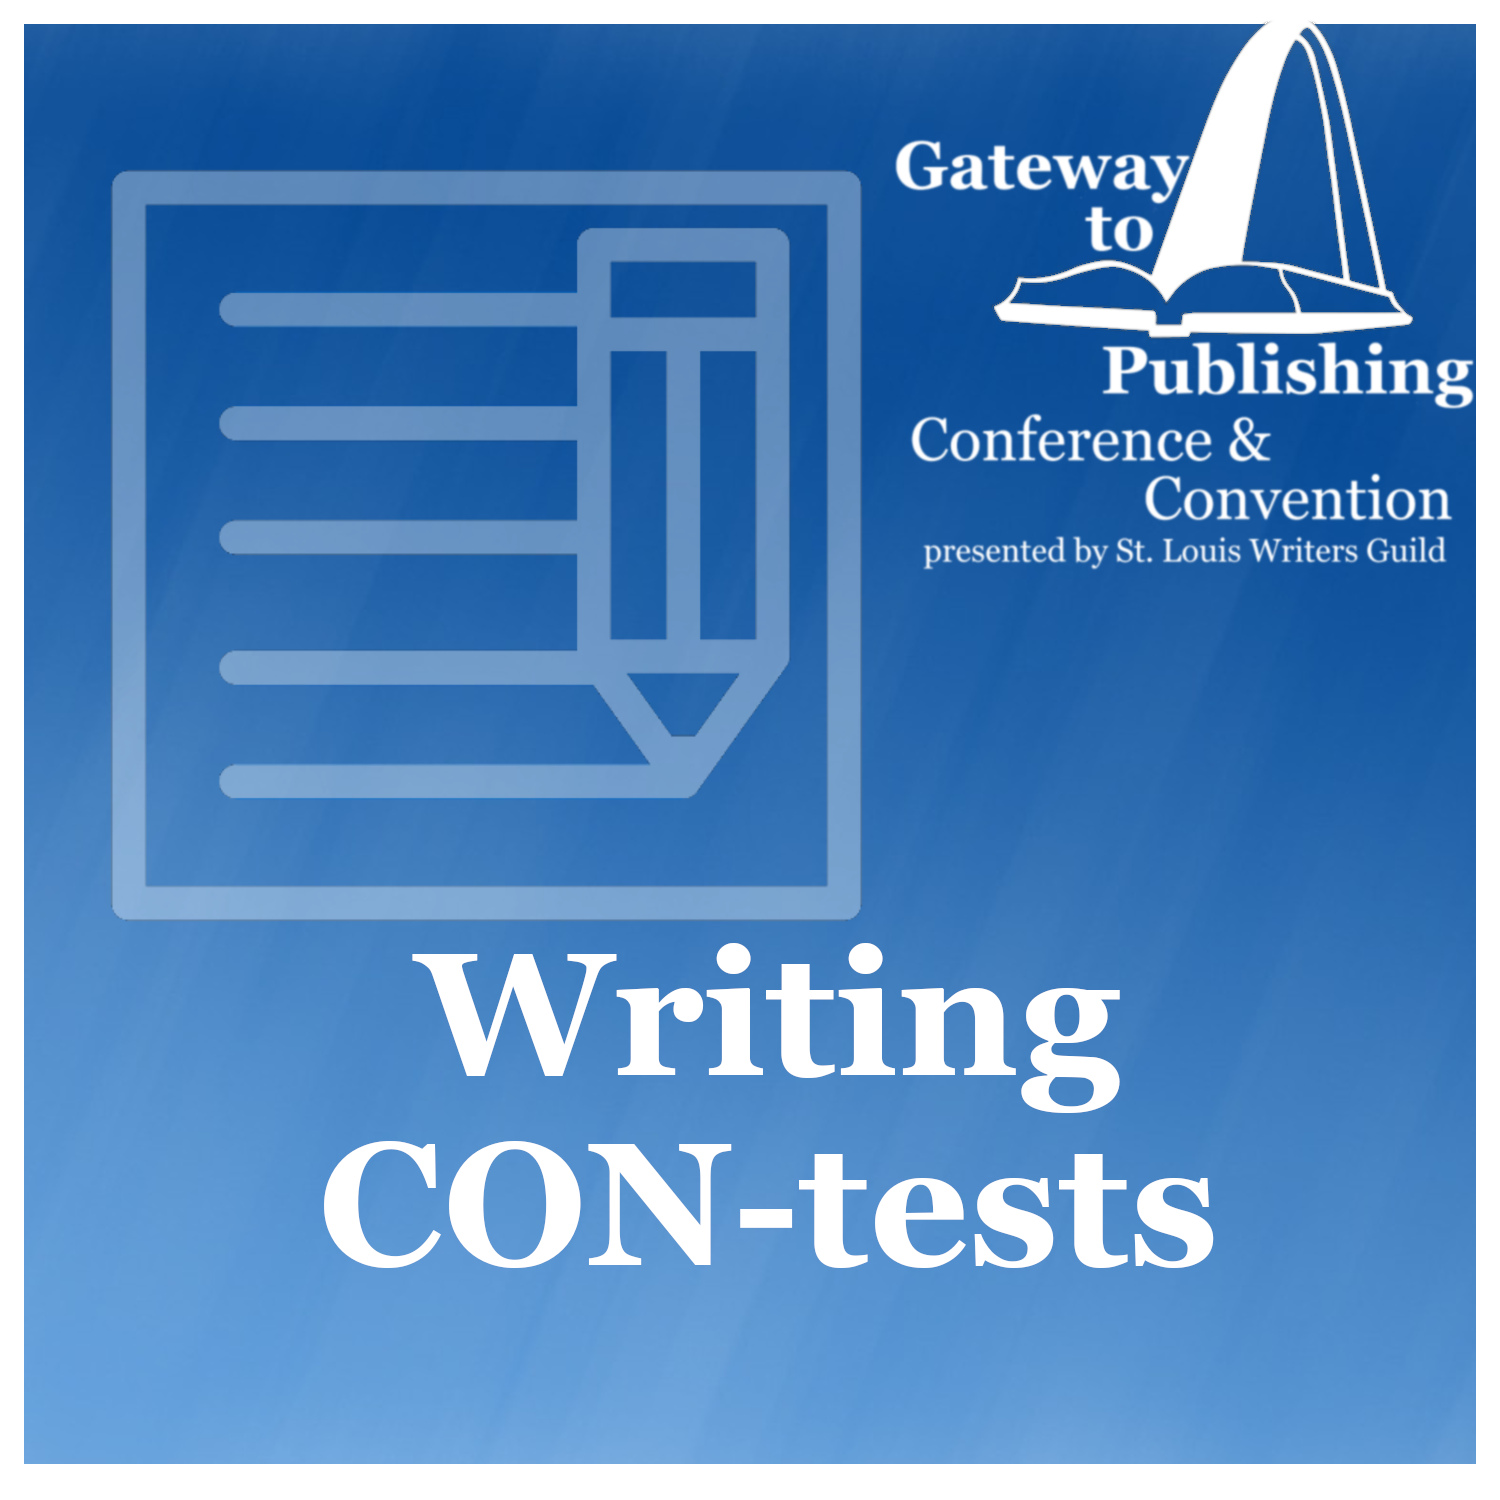 Icon GC CON-tests SLWG 2018.jpg